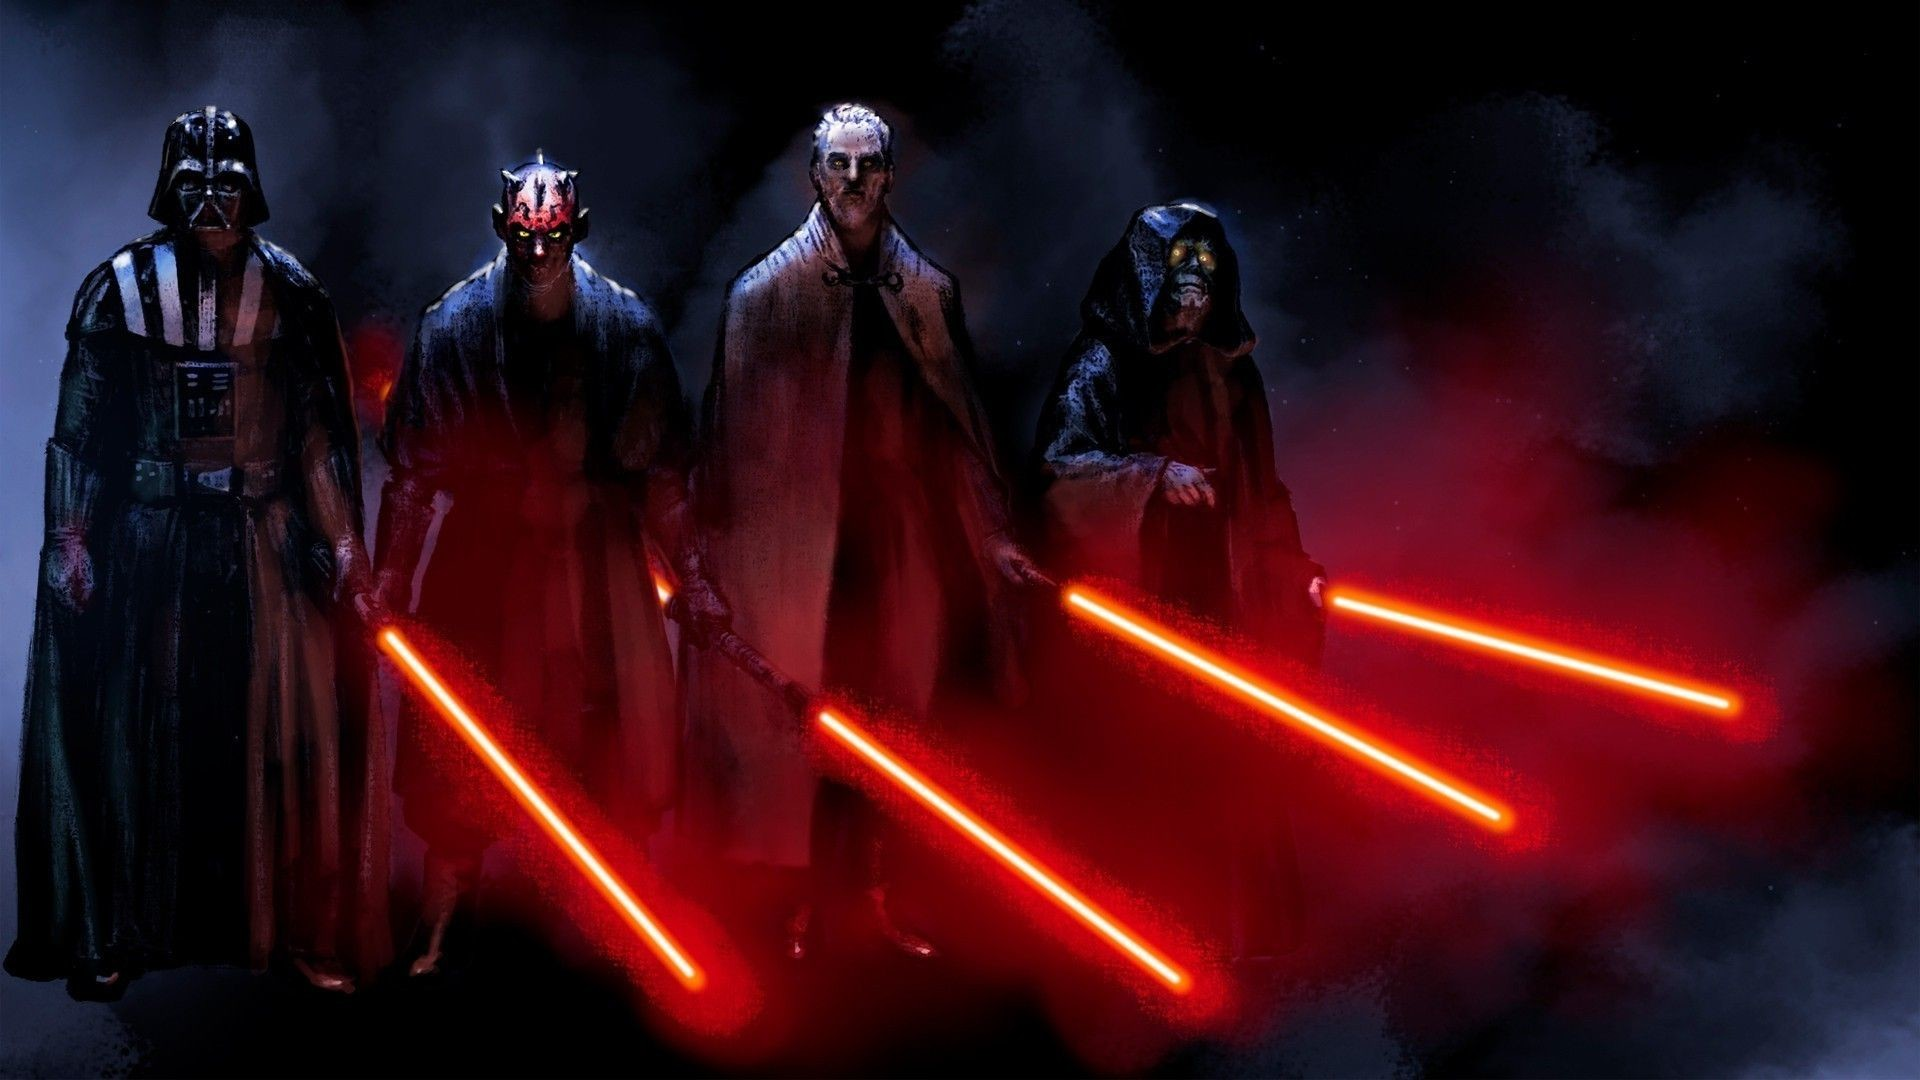 1920x1080 Star wars sith empire old republic kotor wallpapers jpg  High  definition kotor wallpaper